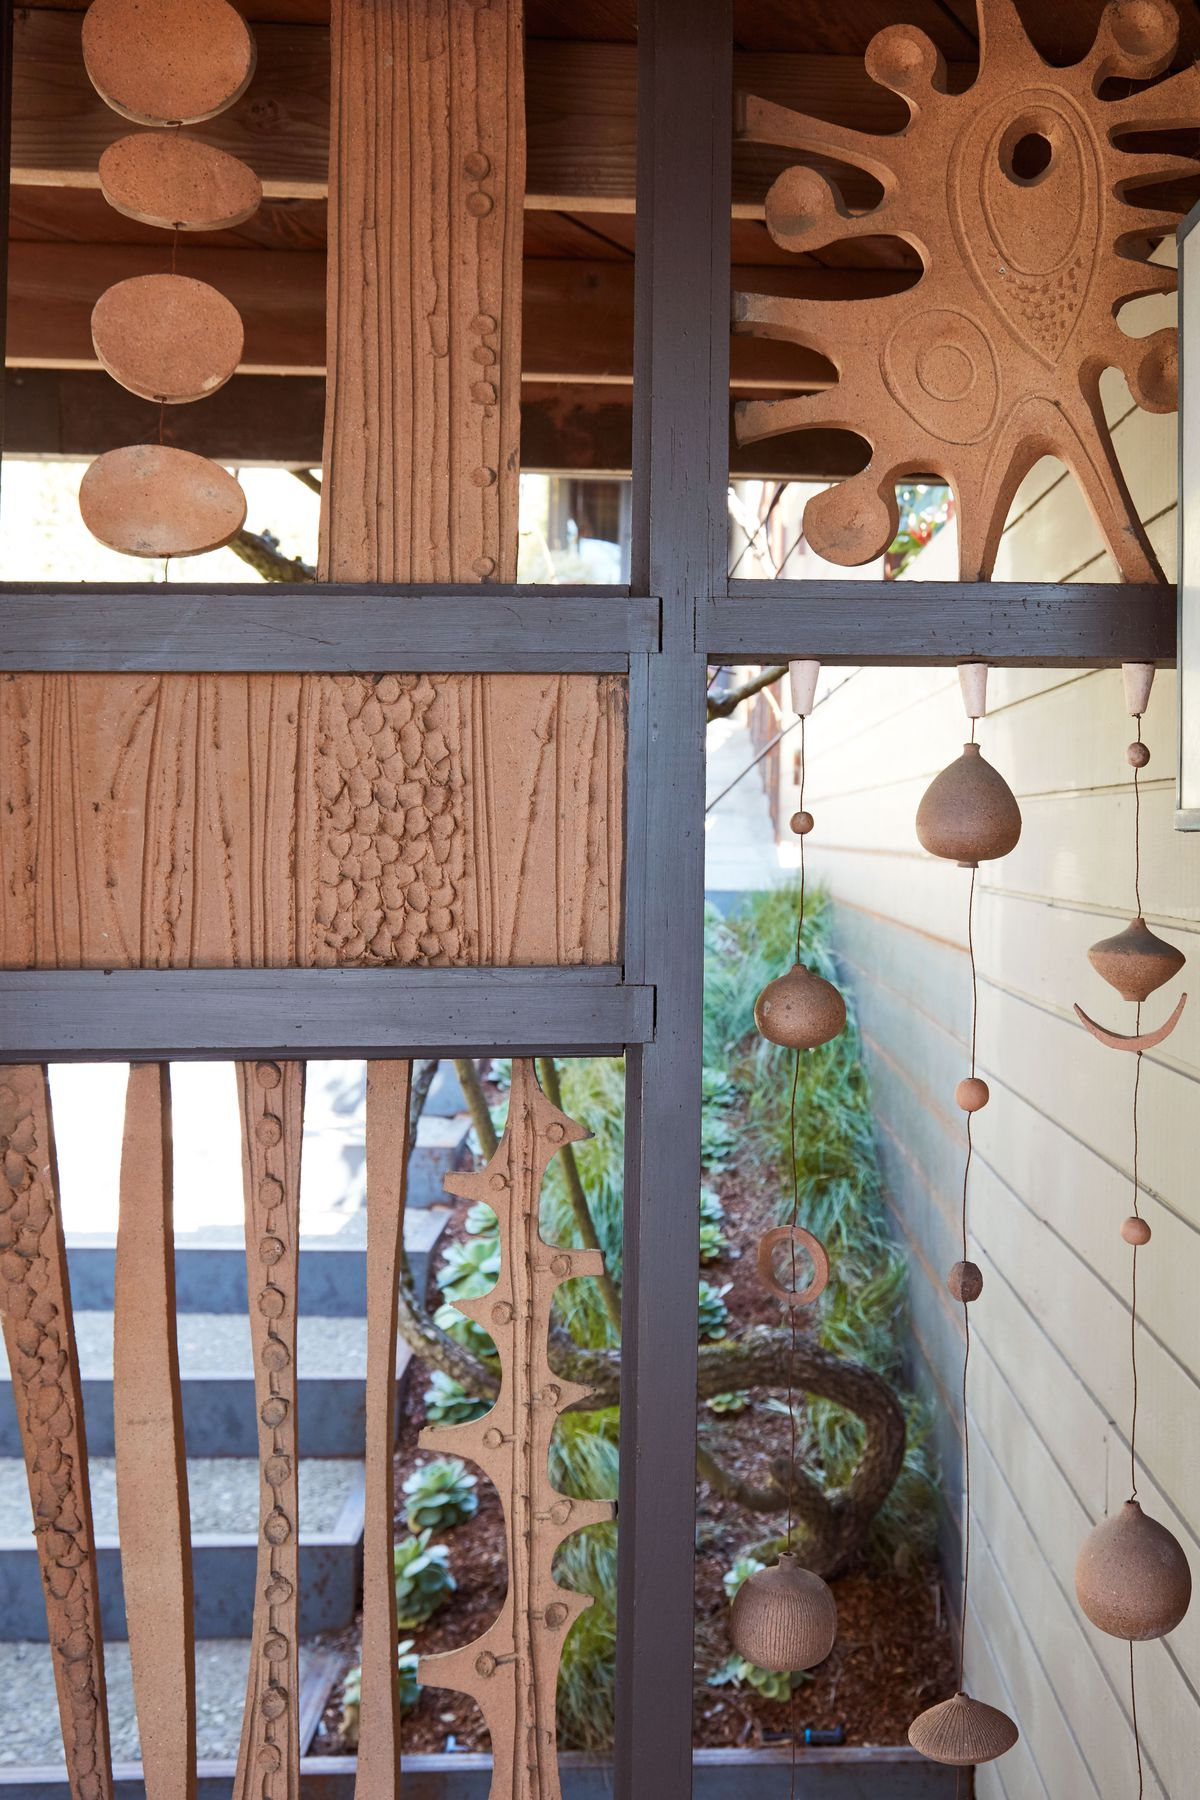 An entryway. There are ceramic cutouts in the partition in the entryway.